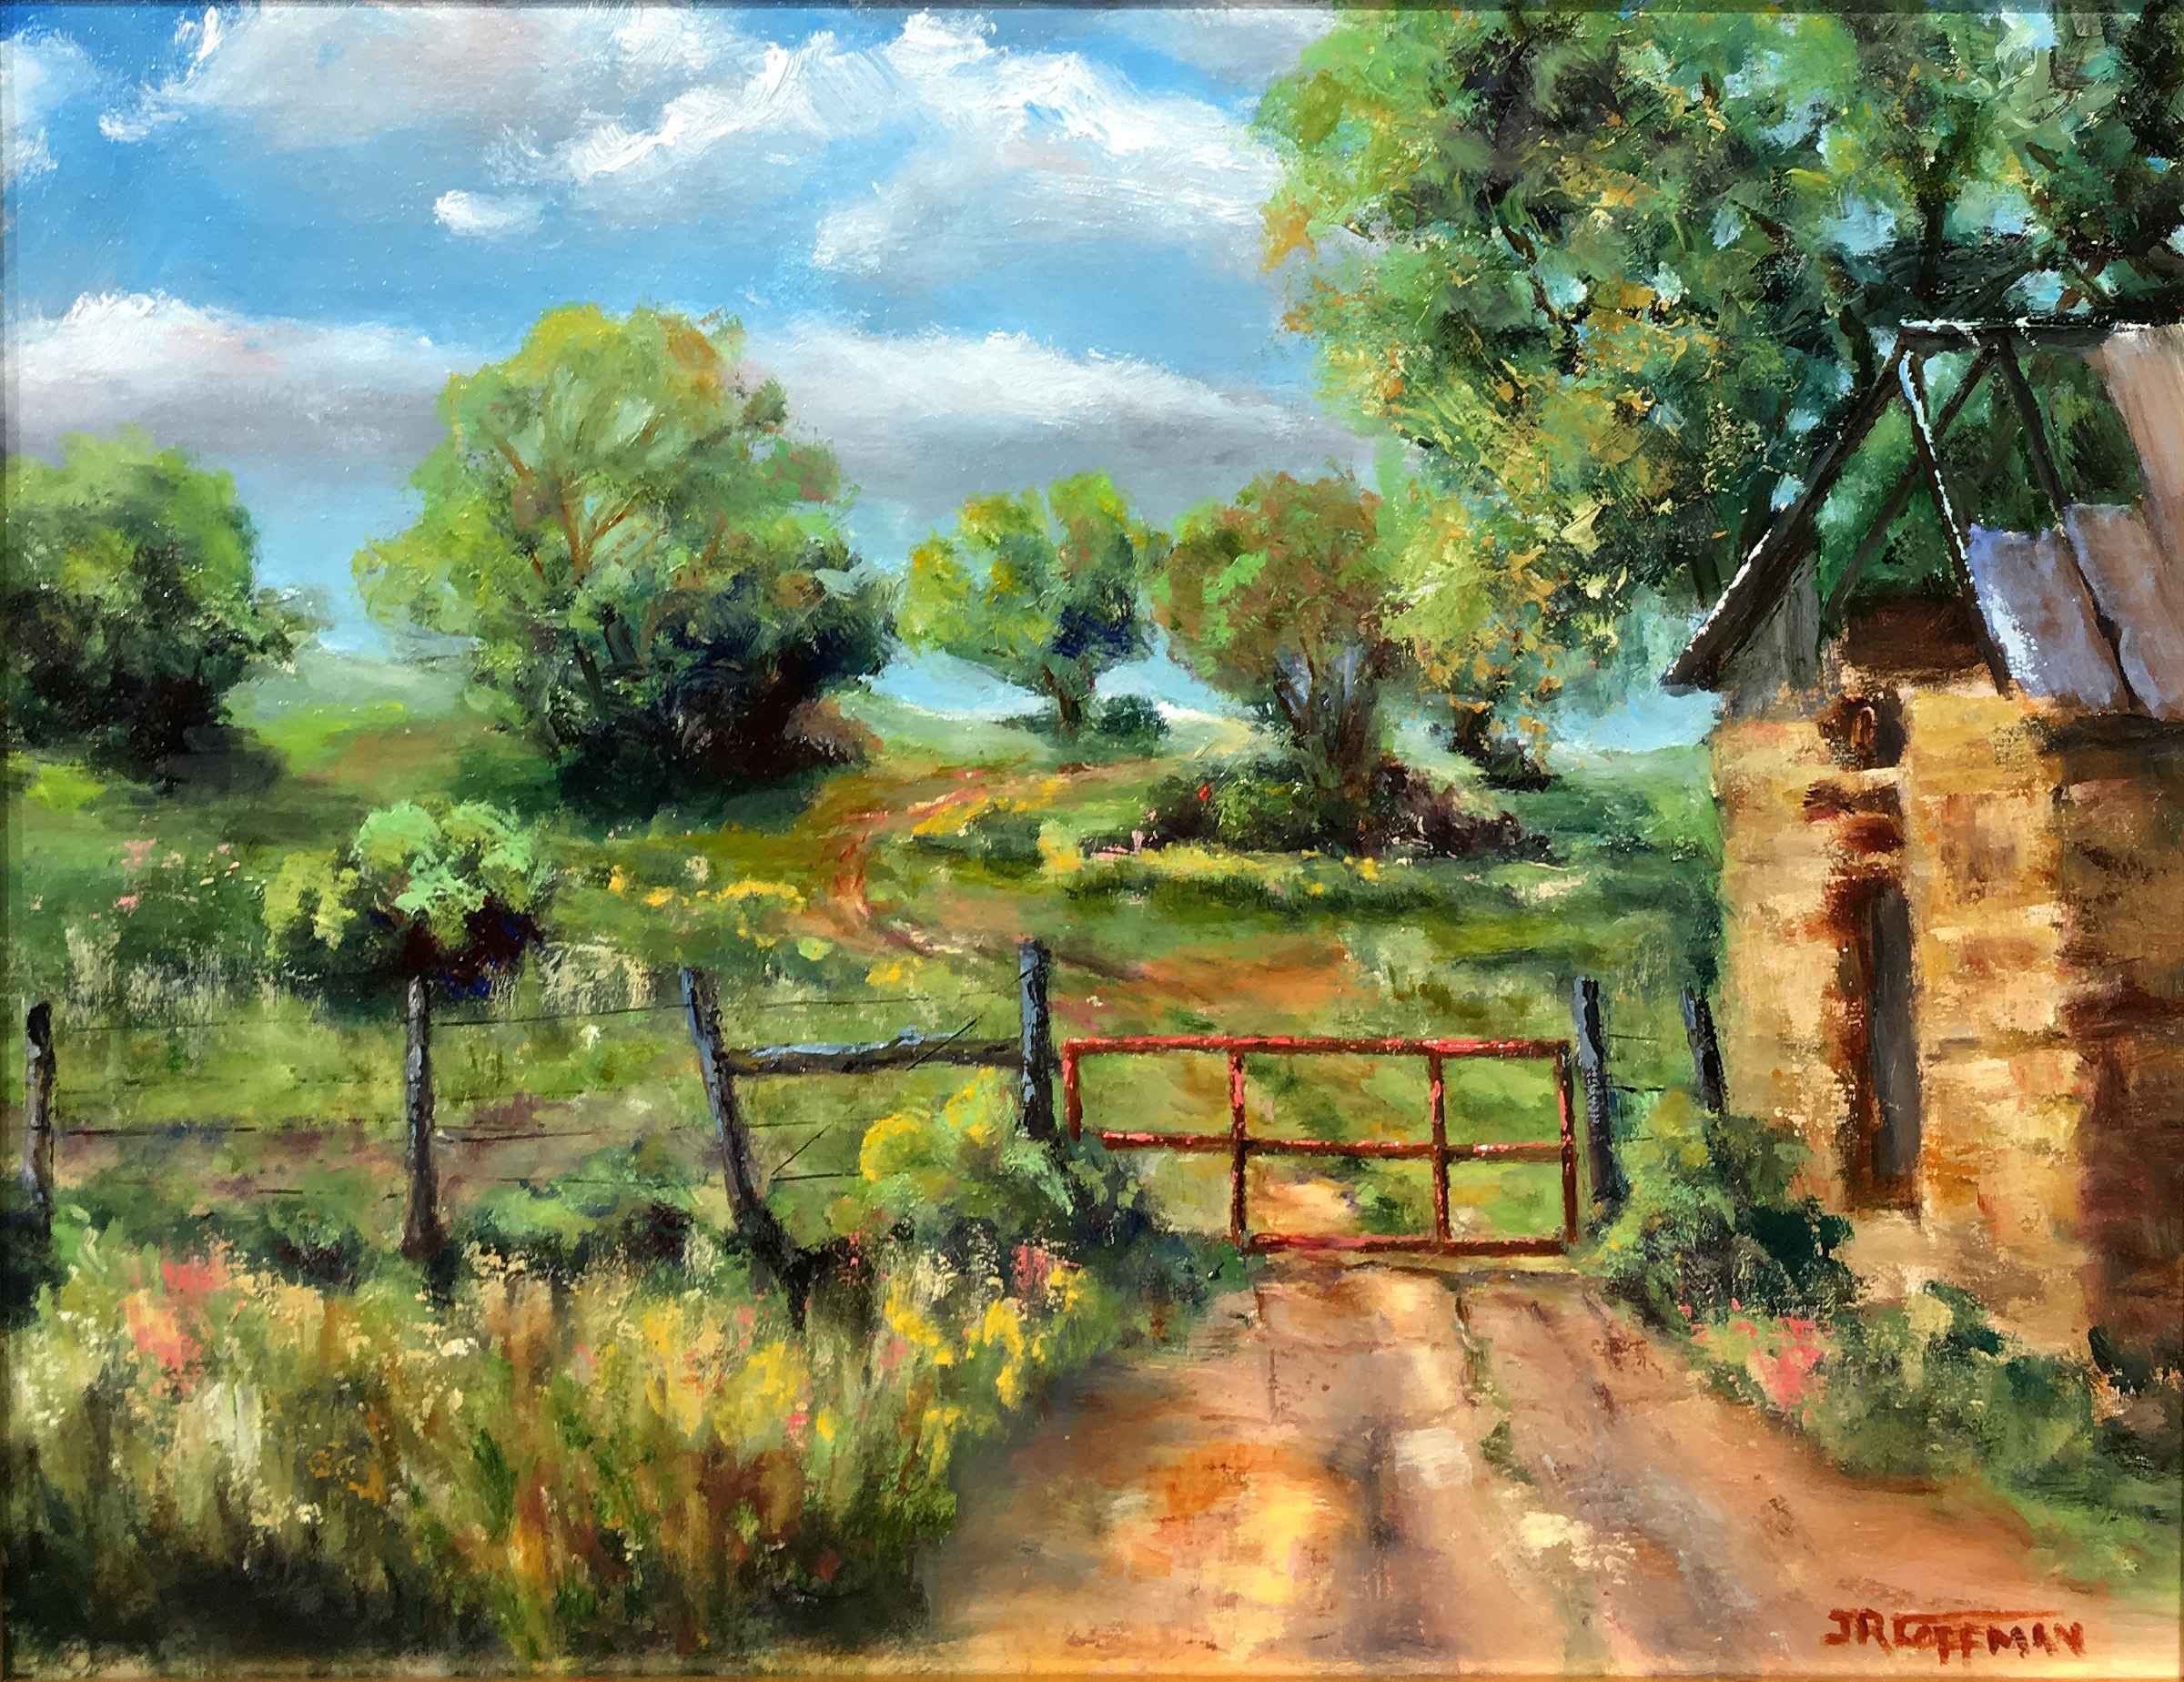 The Red Gate by  Jim Coffman - Masterpiece Online